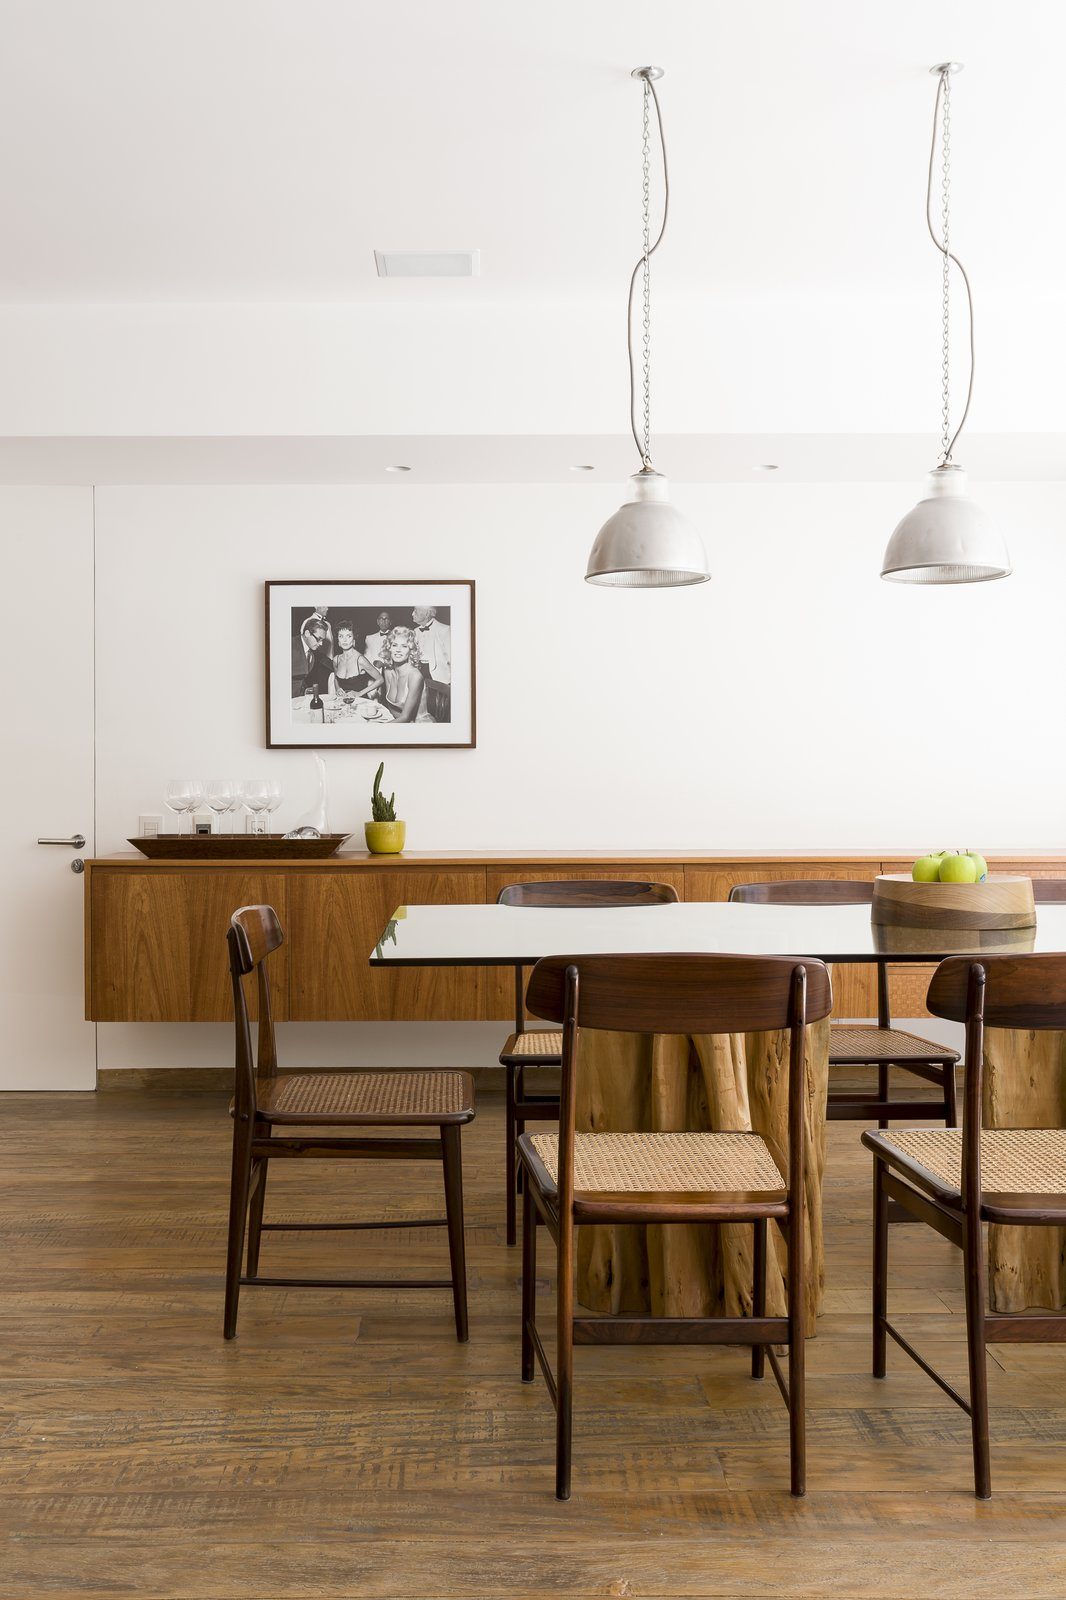 Dining Room, Pendant Lighting, Table, Medium Hardwood Floor, Chair, Recessed Lighting, and Bar The use of different woods and textures contrast beautifully with one another.      Photo 8 of 13 in Lush Gardens Infuse Tropical Vibes in This Chic Brazilian Home